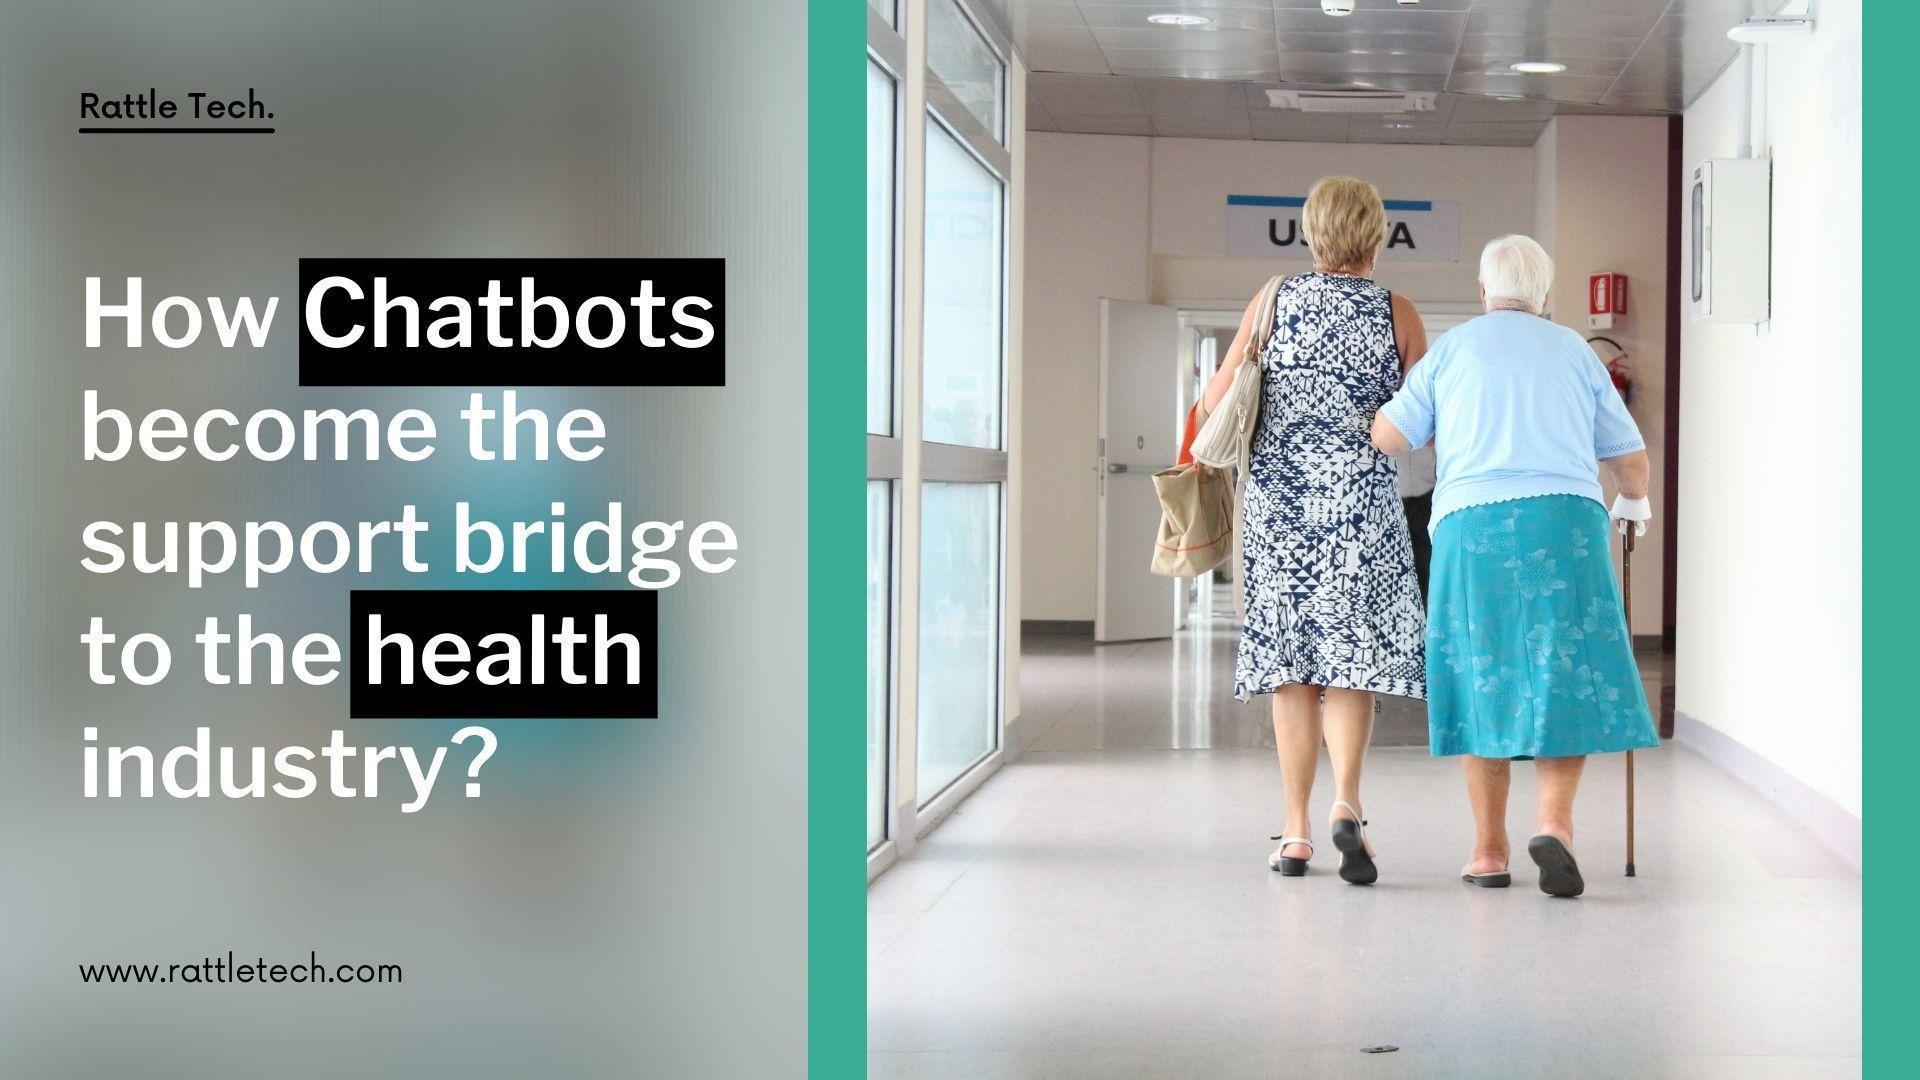 How Chatbots become the support bridge to the health industry